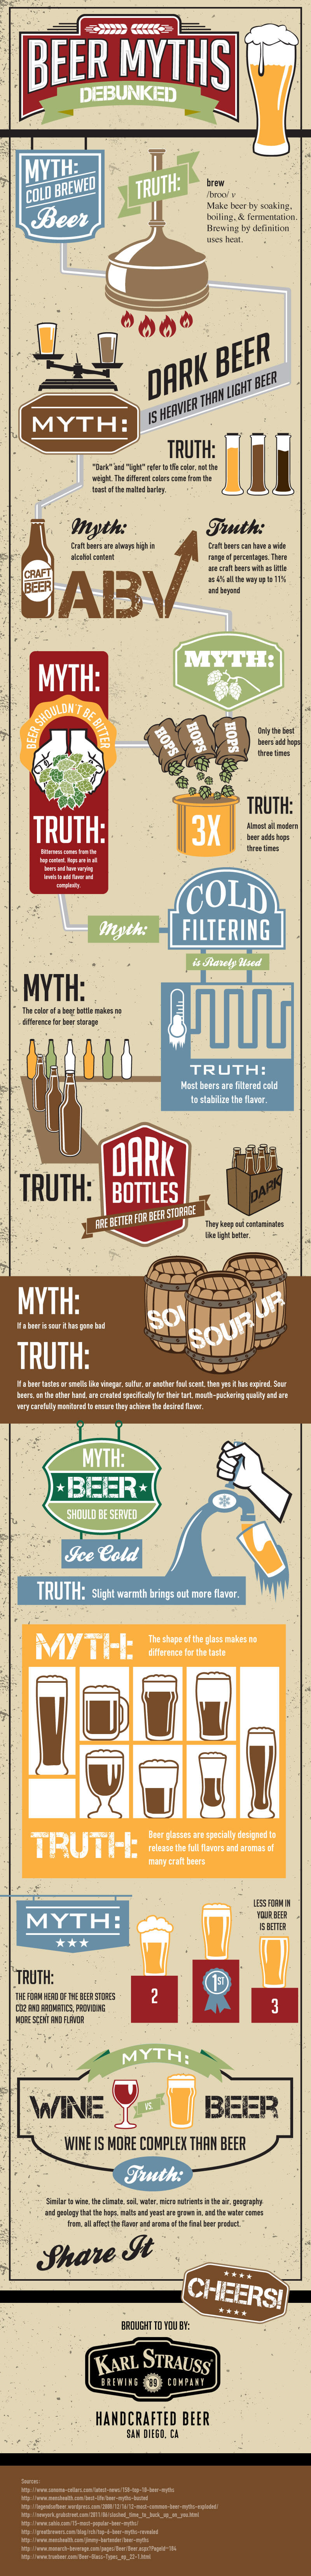 tips-to-debunk-beer-based-myths-tips-tipsographic